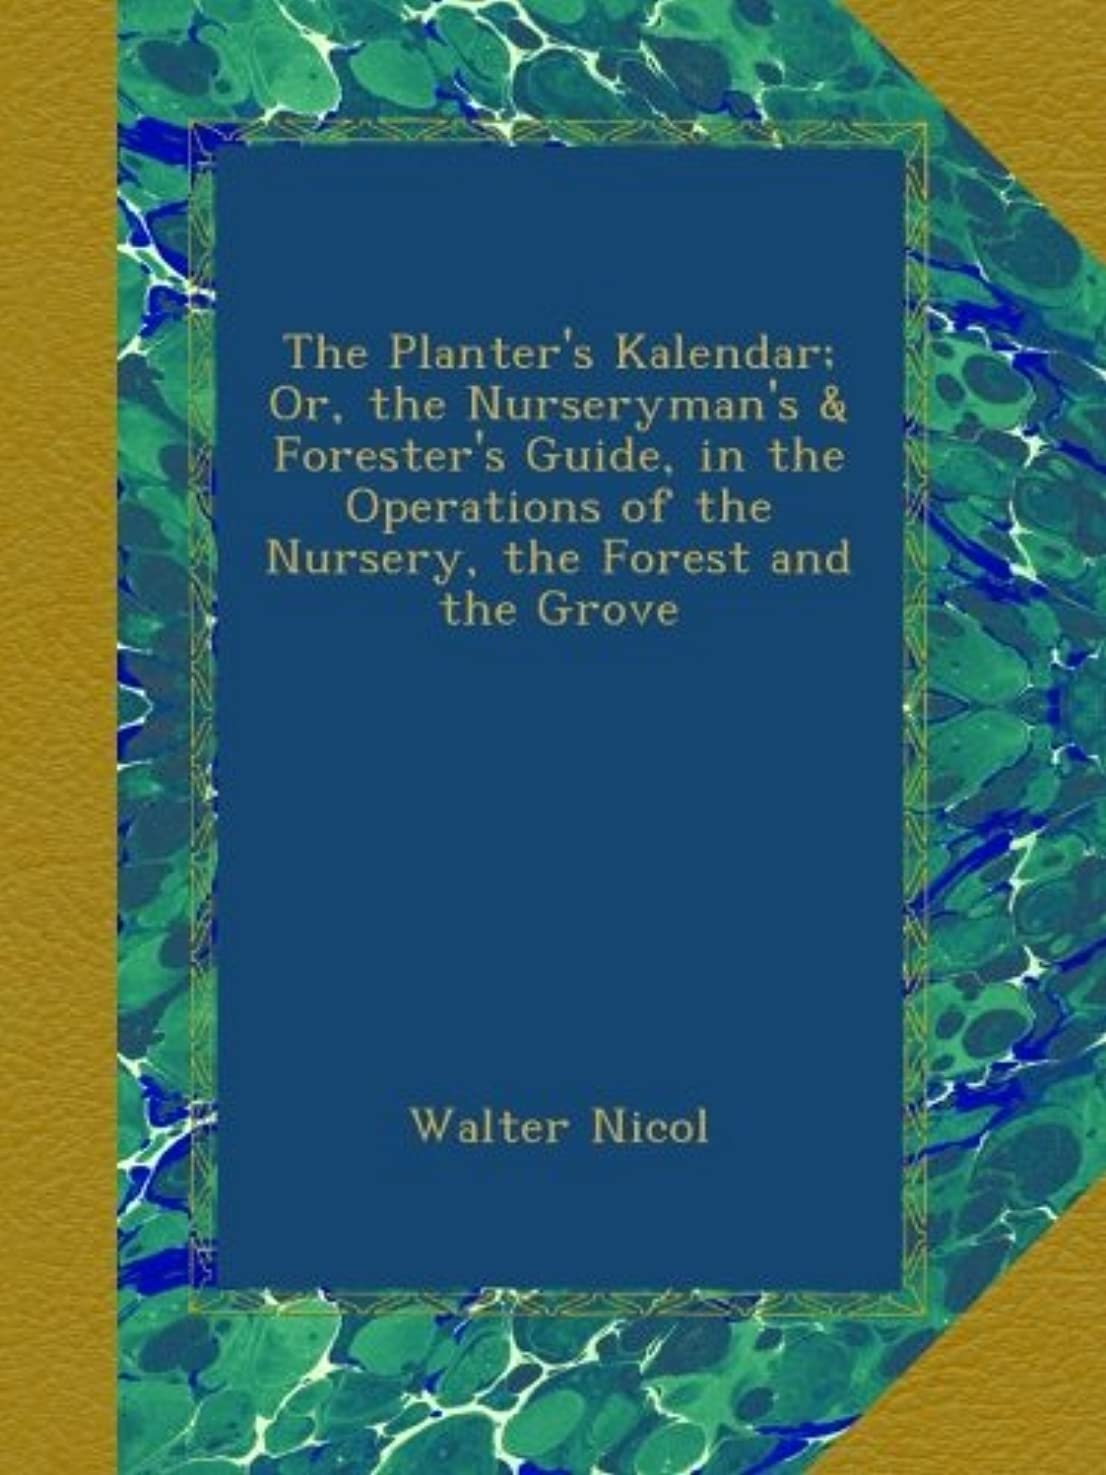 モチーフコインランドリー桃The Planter's Kalendar; Or, the Nurseryman's & Forester's Guide, in the Operations of the Nursery, the Forest and the Grove